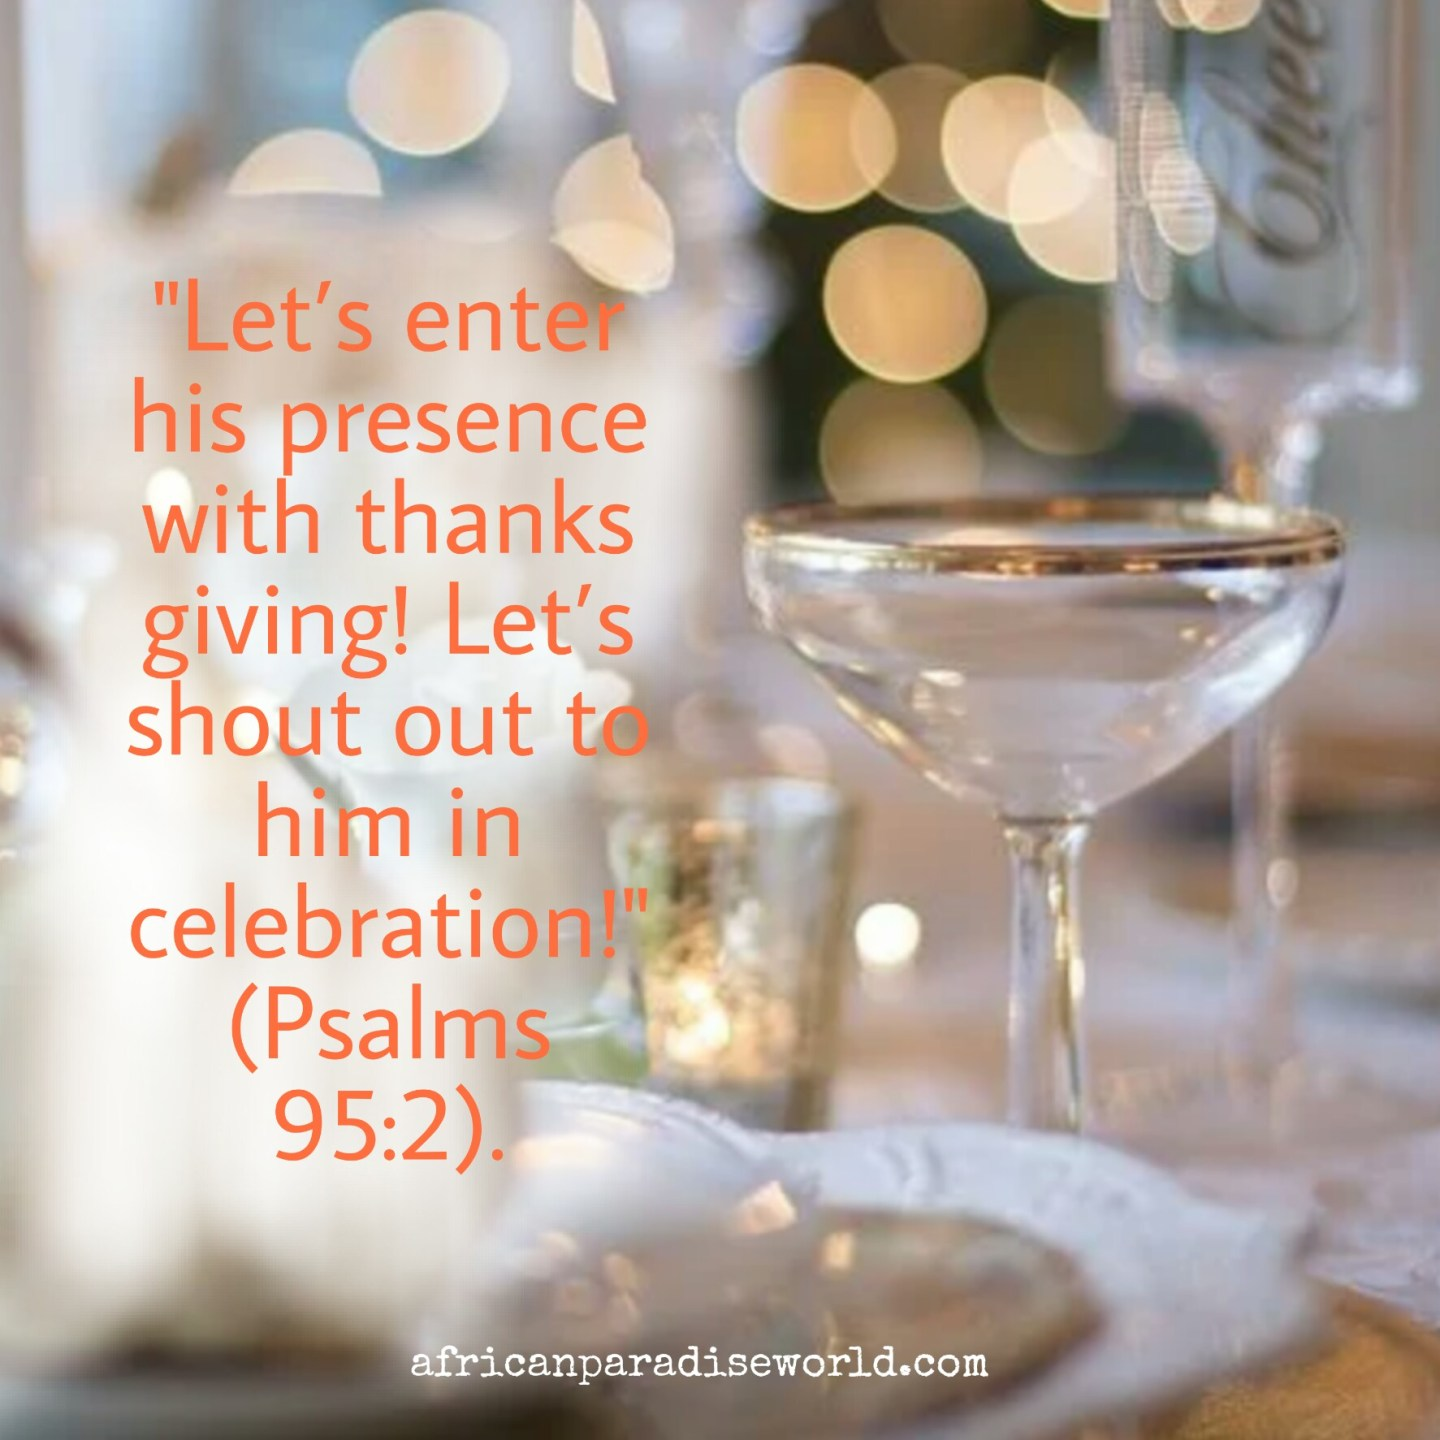 Life with Thanksgiving Bible verses